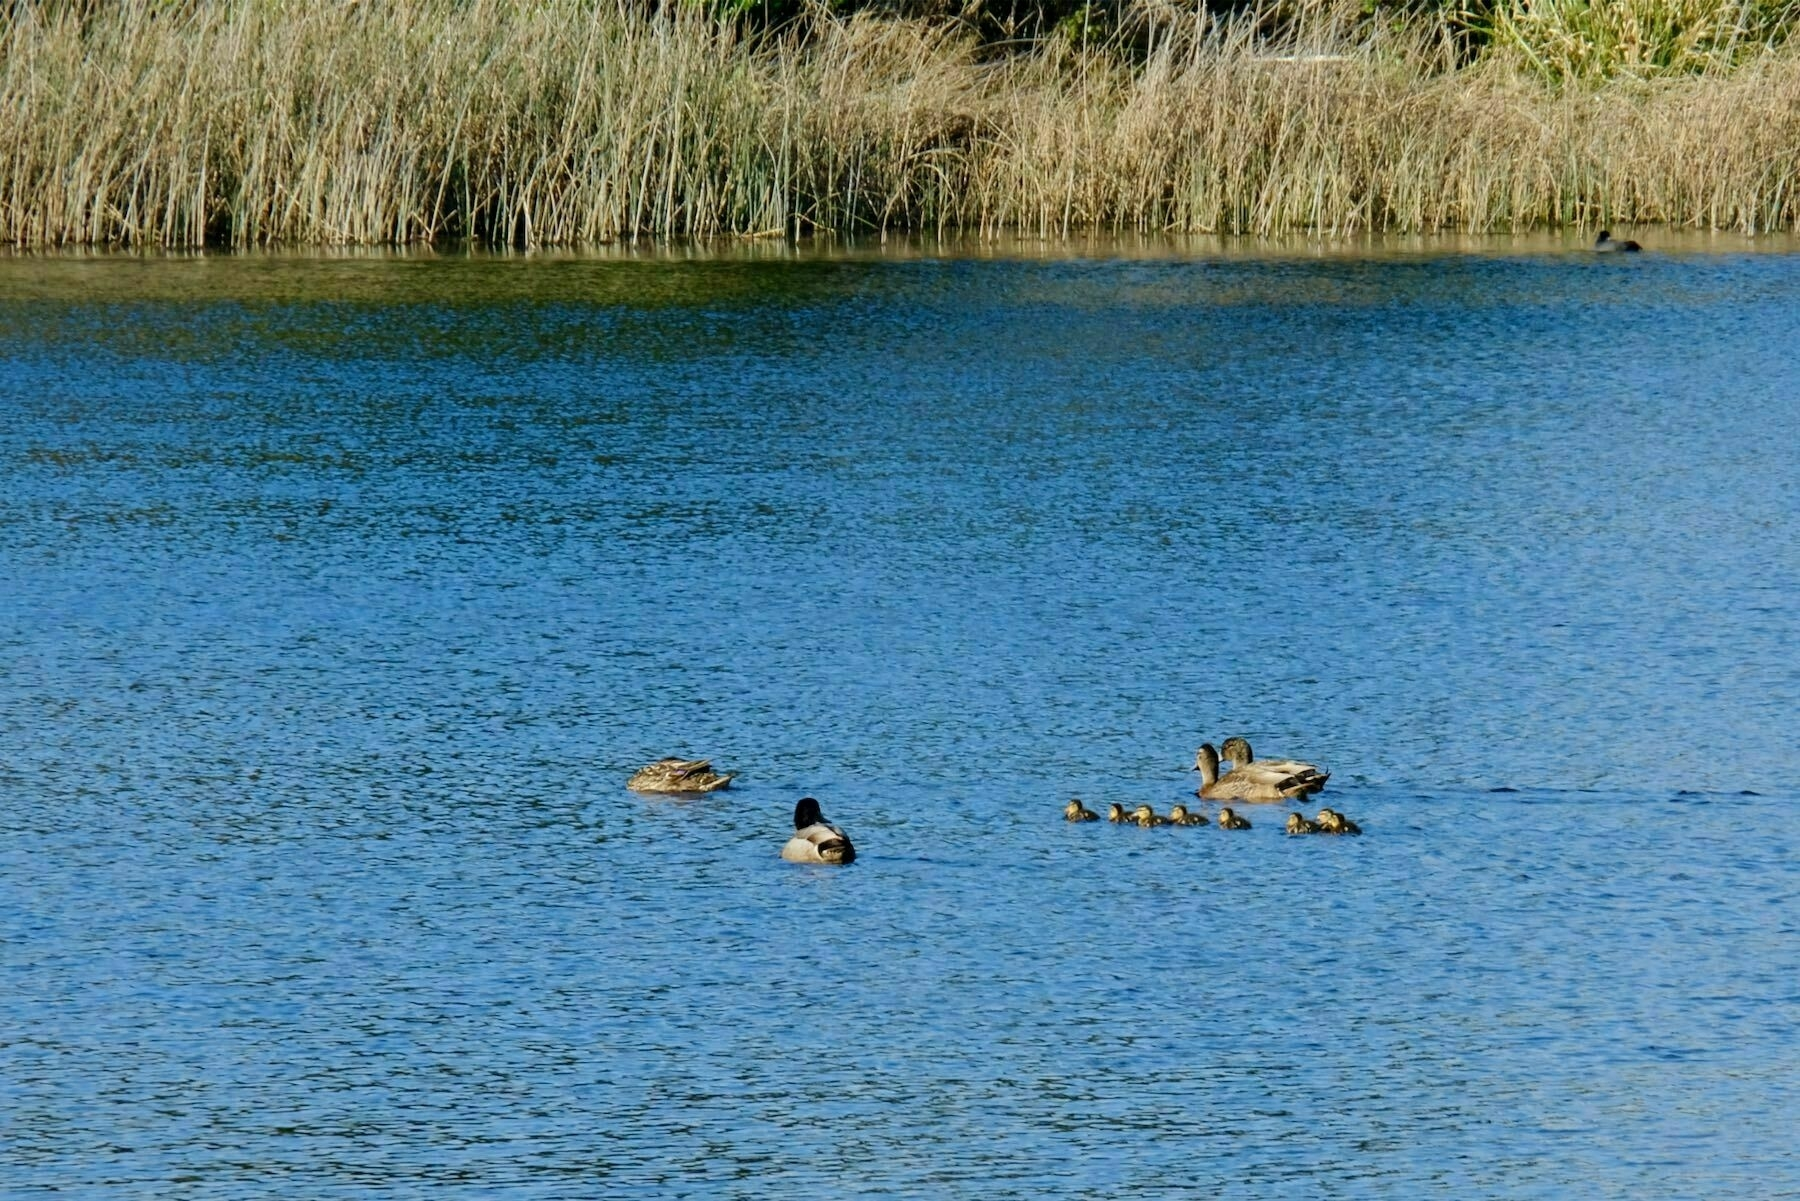 4 ducks and 7 tiny ducklings on a lake.